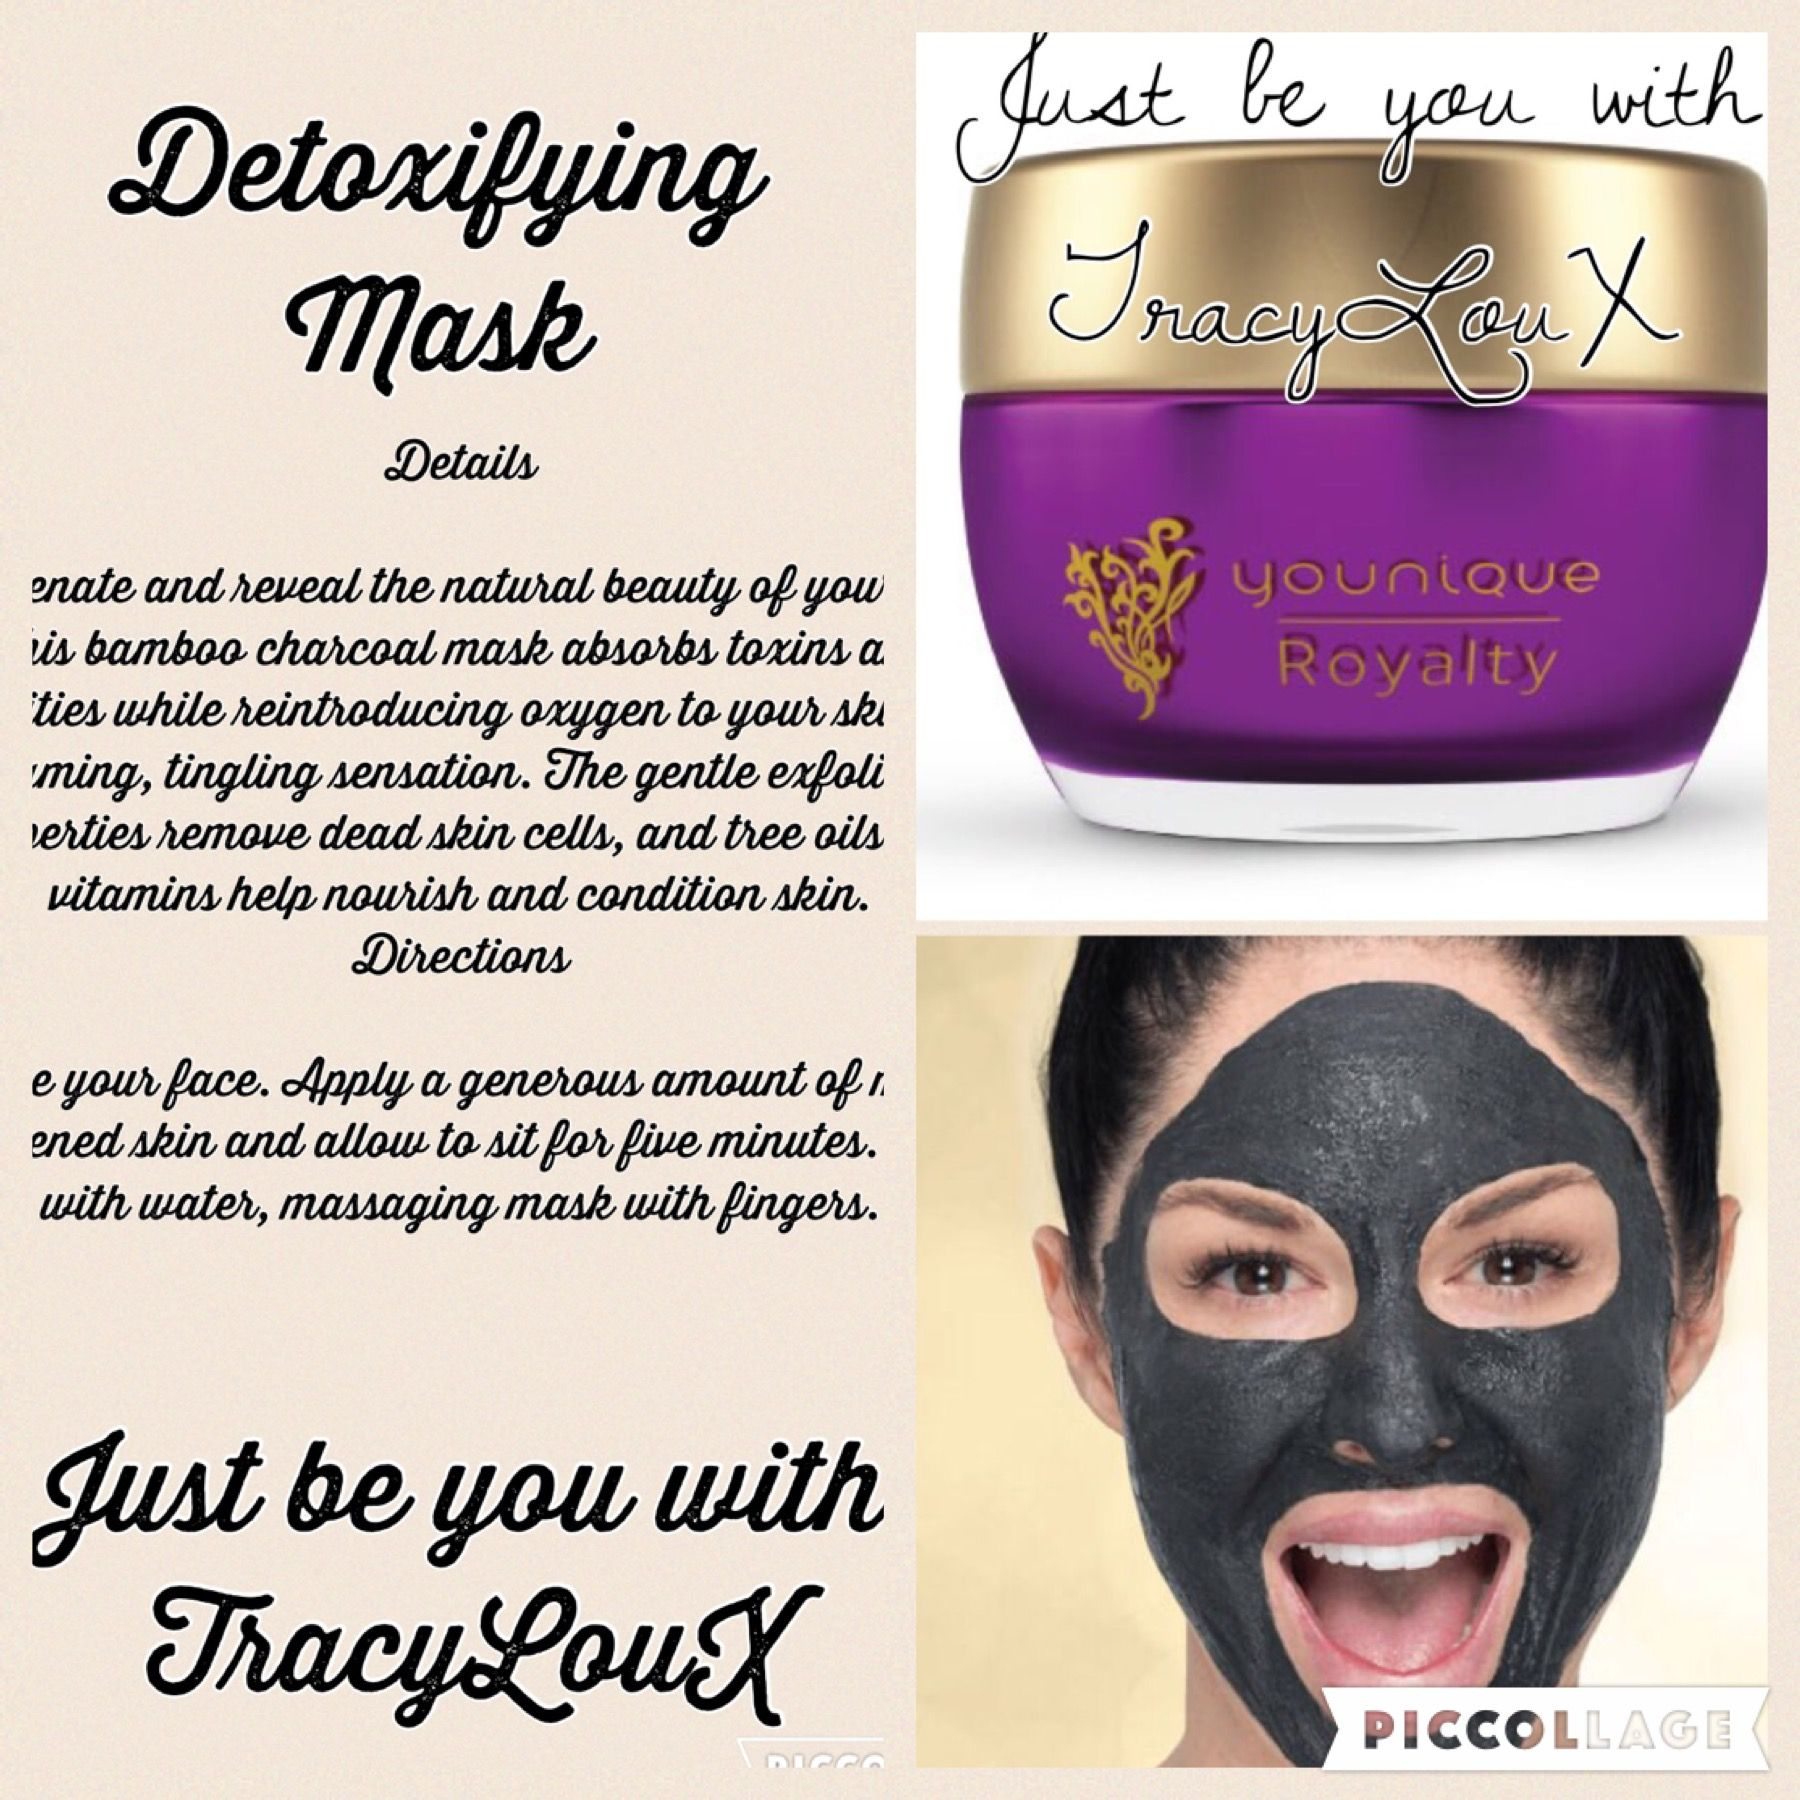 Detox Your Skin With This Diy Charcoal Mask: Royalty Detoxifying Mask Bamboo Charcoal ϸ� Rejuvenate And